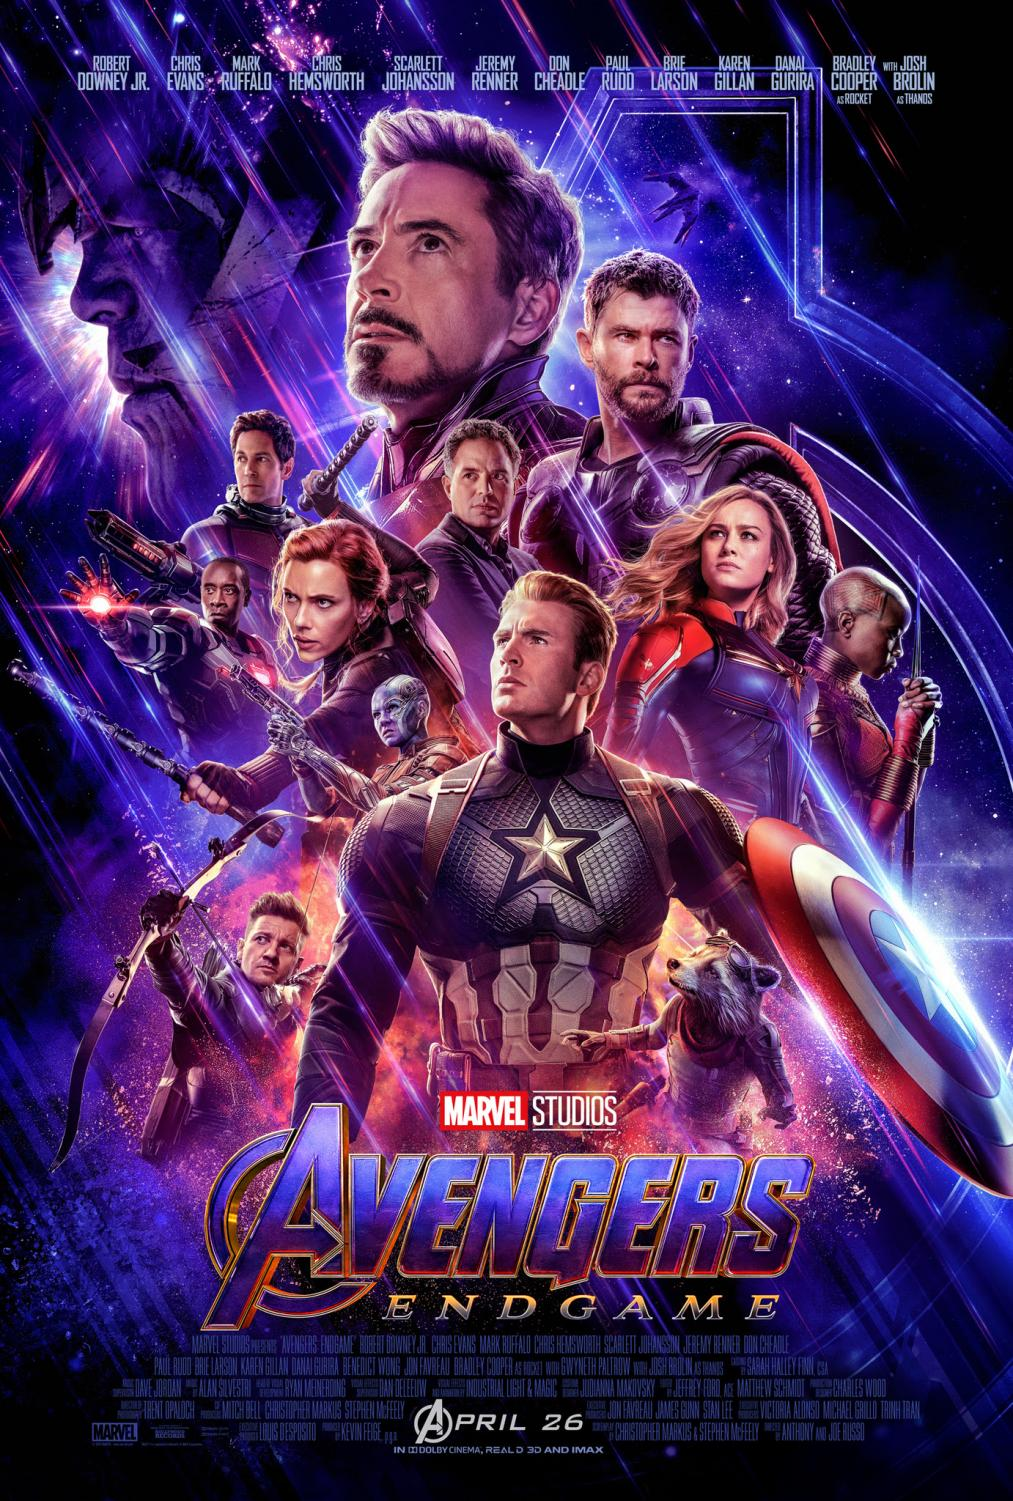 Marvel cover art.  Source: https://www.marvel.com/movies/avengers-endgame